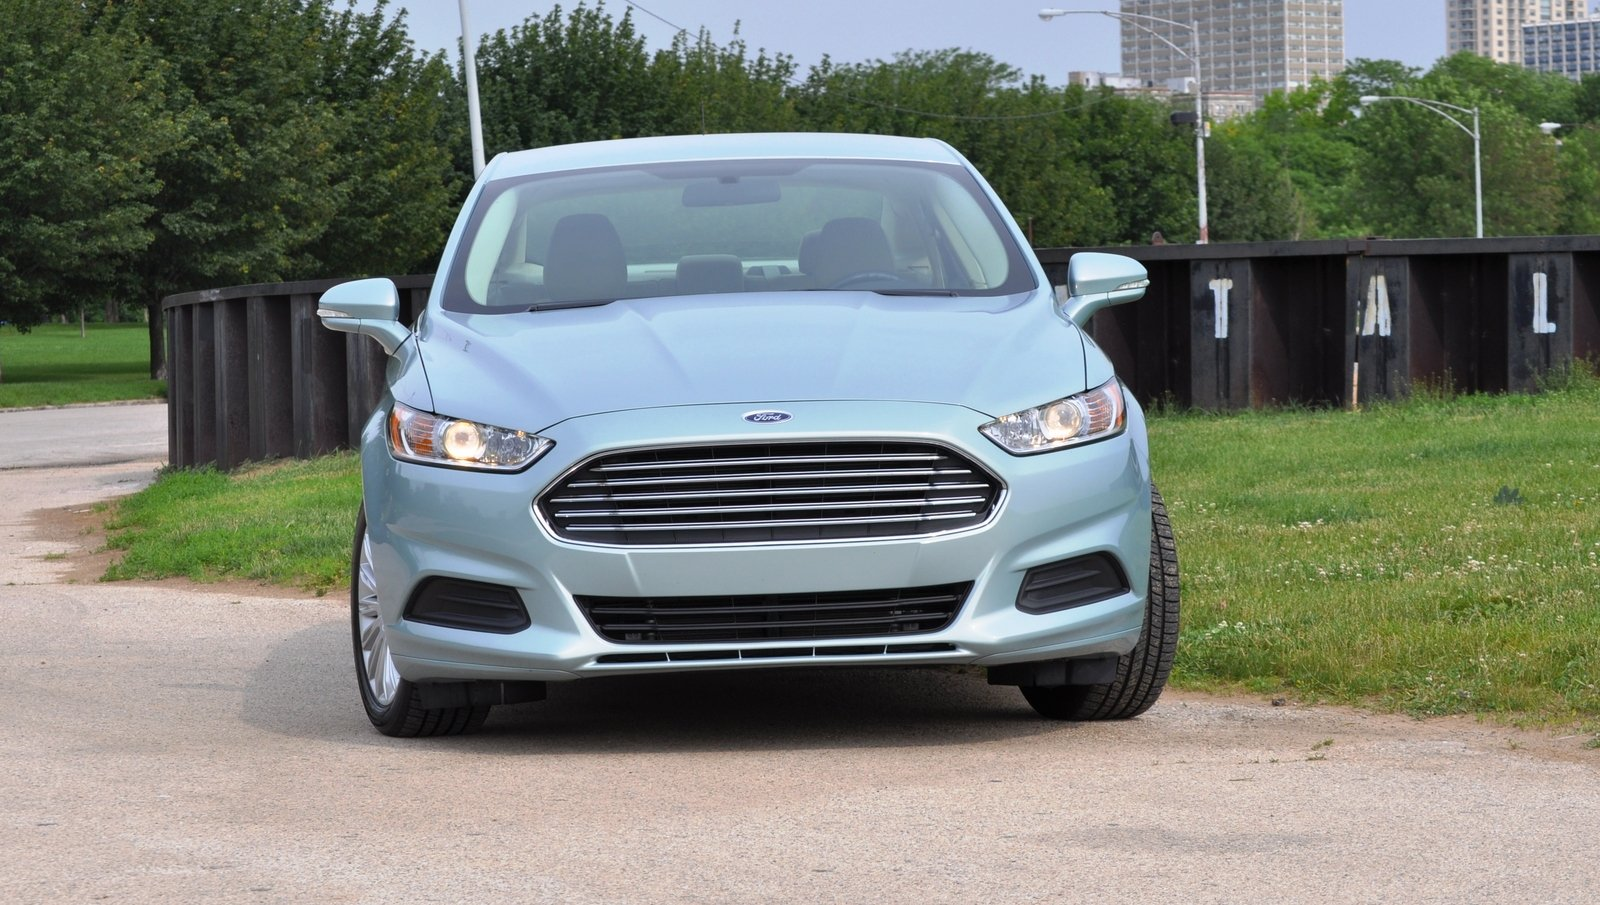 2014 ford fusion hybrid picture 512558 car review top speed. Cars Review. Best American Auto & Cars Review